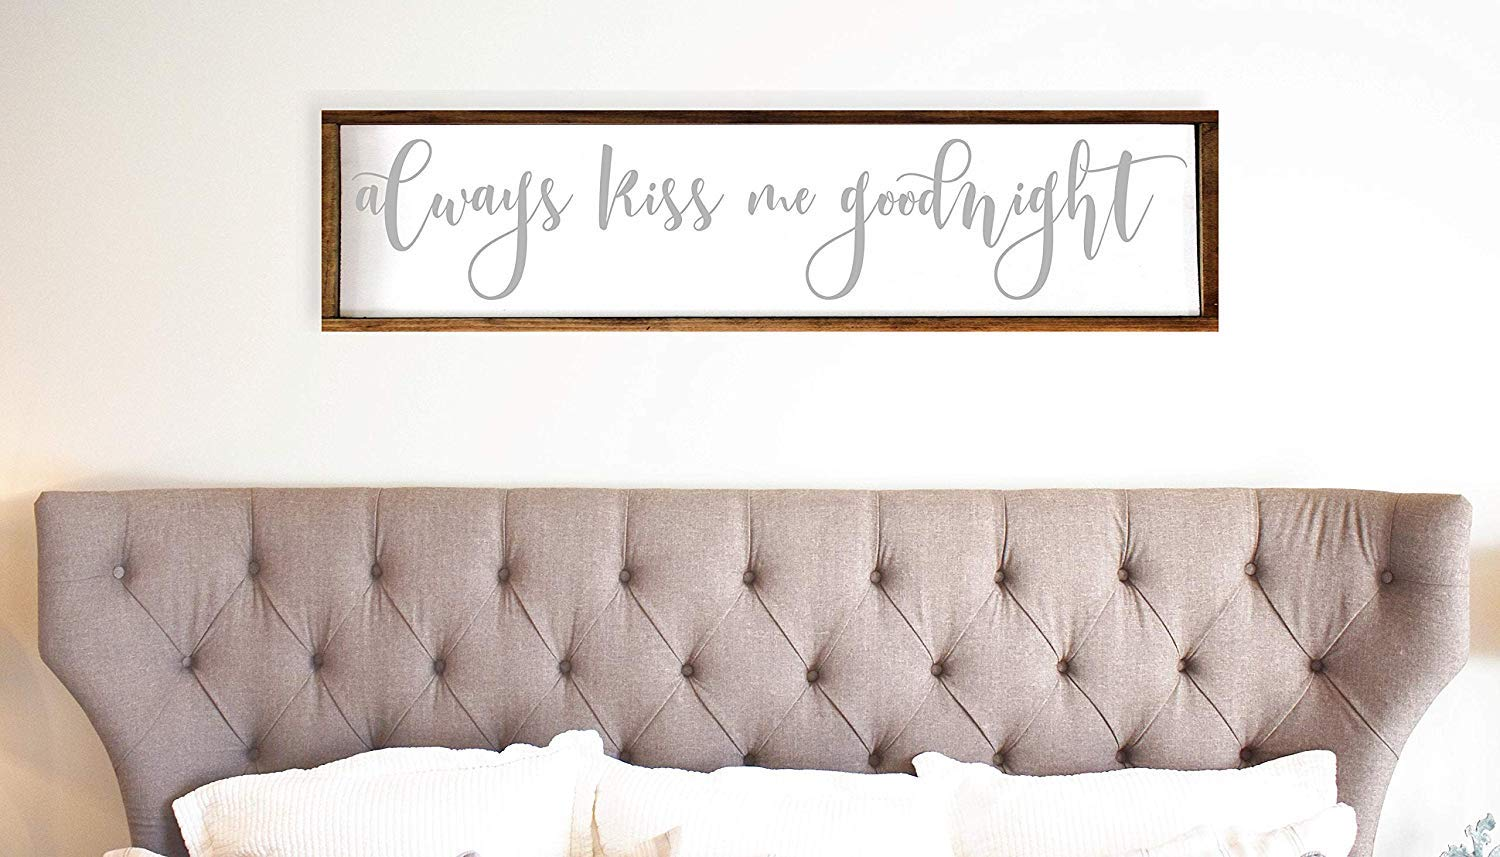 15x50cm Always Kiss Me Goodnight Farmhouse Funny Sign 12x48 Over The Bed Decor Bedroom Love Quote Above Bed Funny Sign Rustic Love Funny Sign Bedroom Decor Buy Online In Cayman Islands At